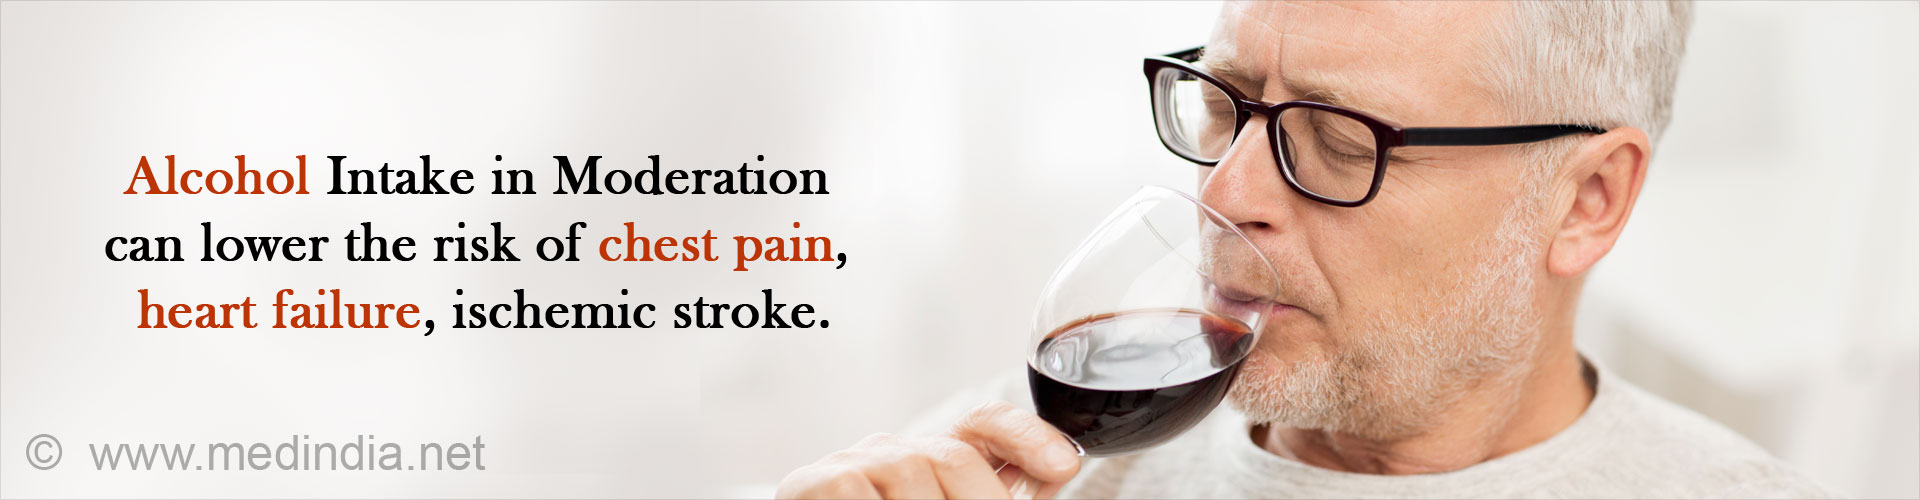 Alcohol intake in moderation can lower the risk of chest pain, heart failure, ischemic stroke.